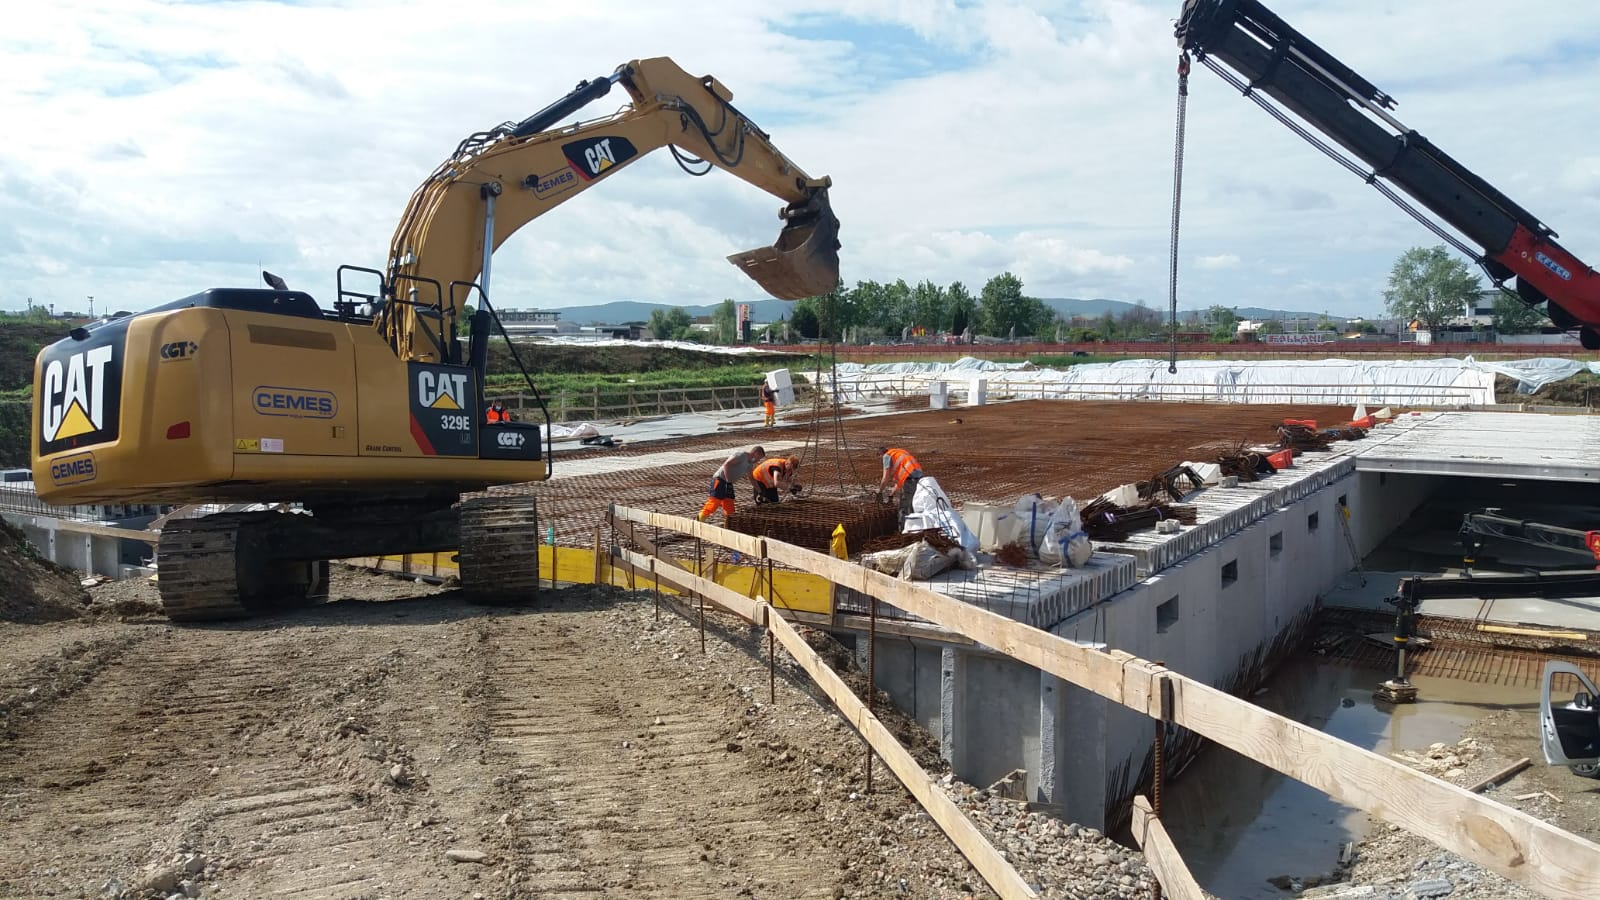 Systems for the treatment and accumulation of rainwater pertaining to the current layout of the Firenze airport